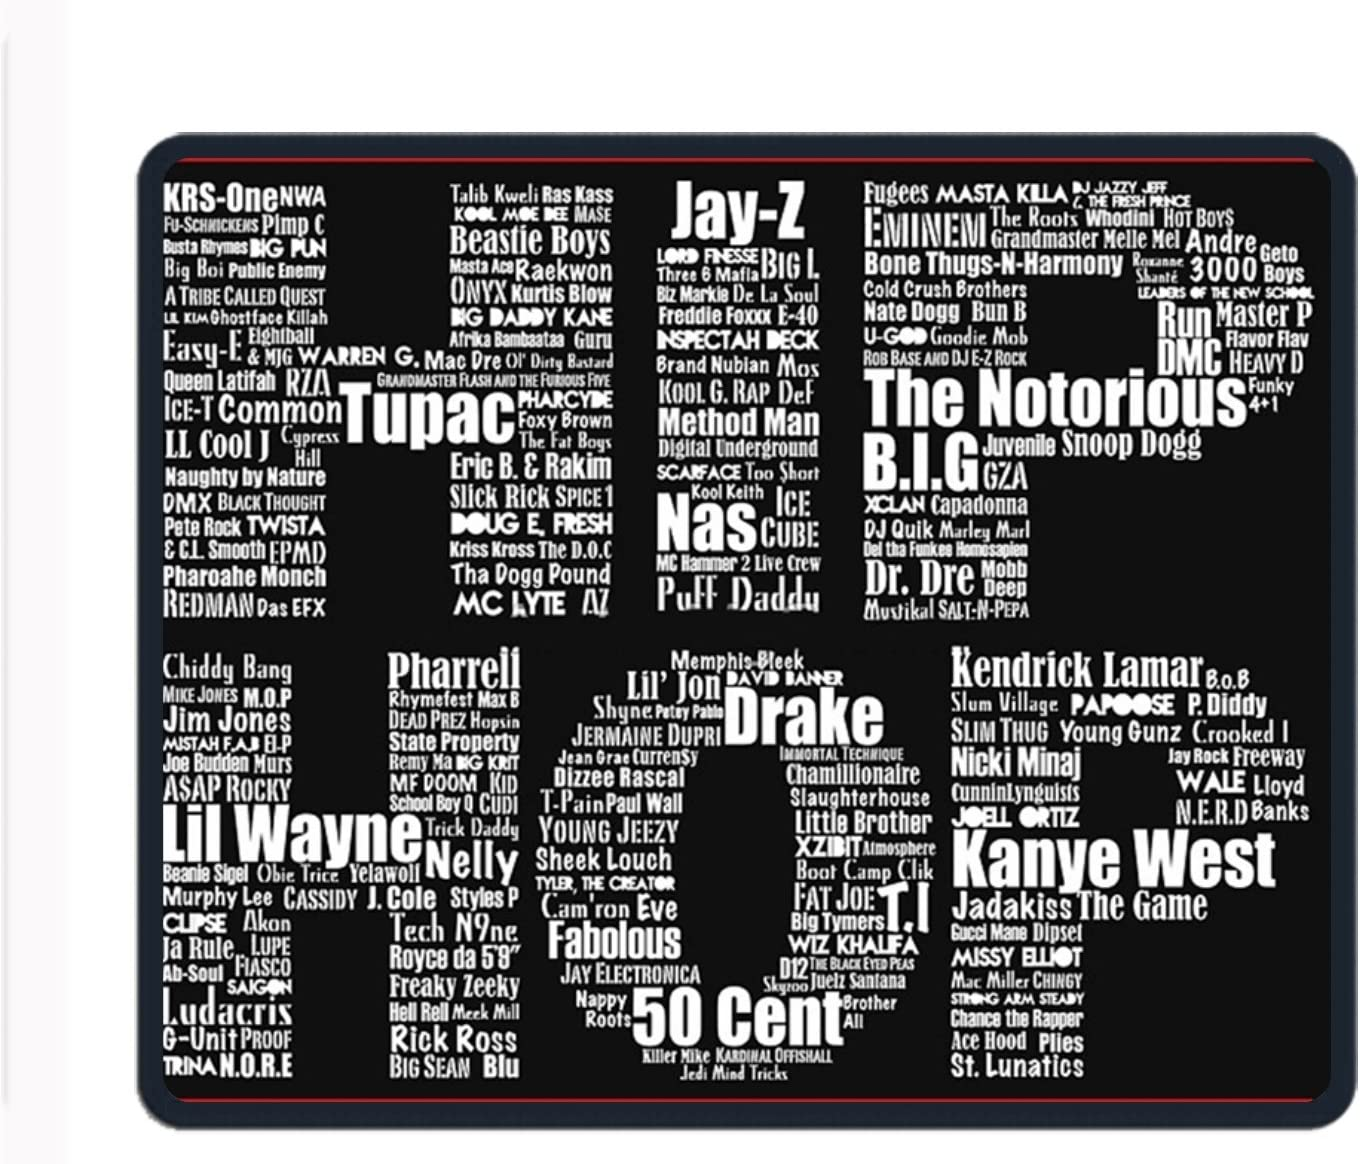 Who is The Doctor Personalized Computer Mouse Pad with Non-Slip Rubber Base Premium-Textured Stitched Edges Mouse Pads for Computers Laptop Office /& Home 7 X 8.6 in